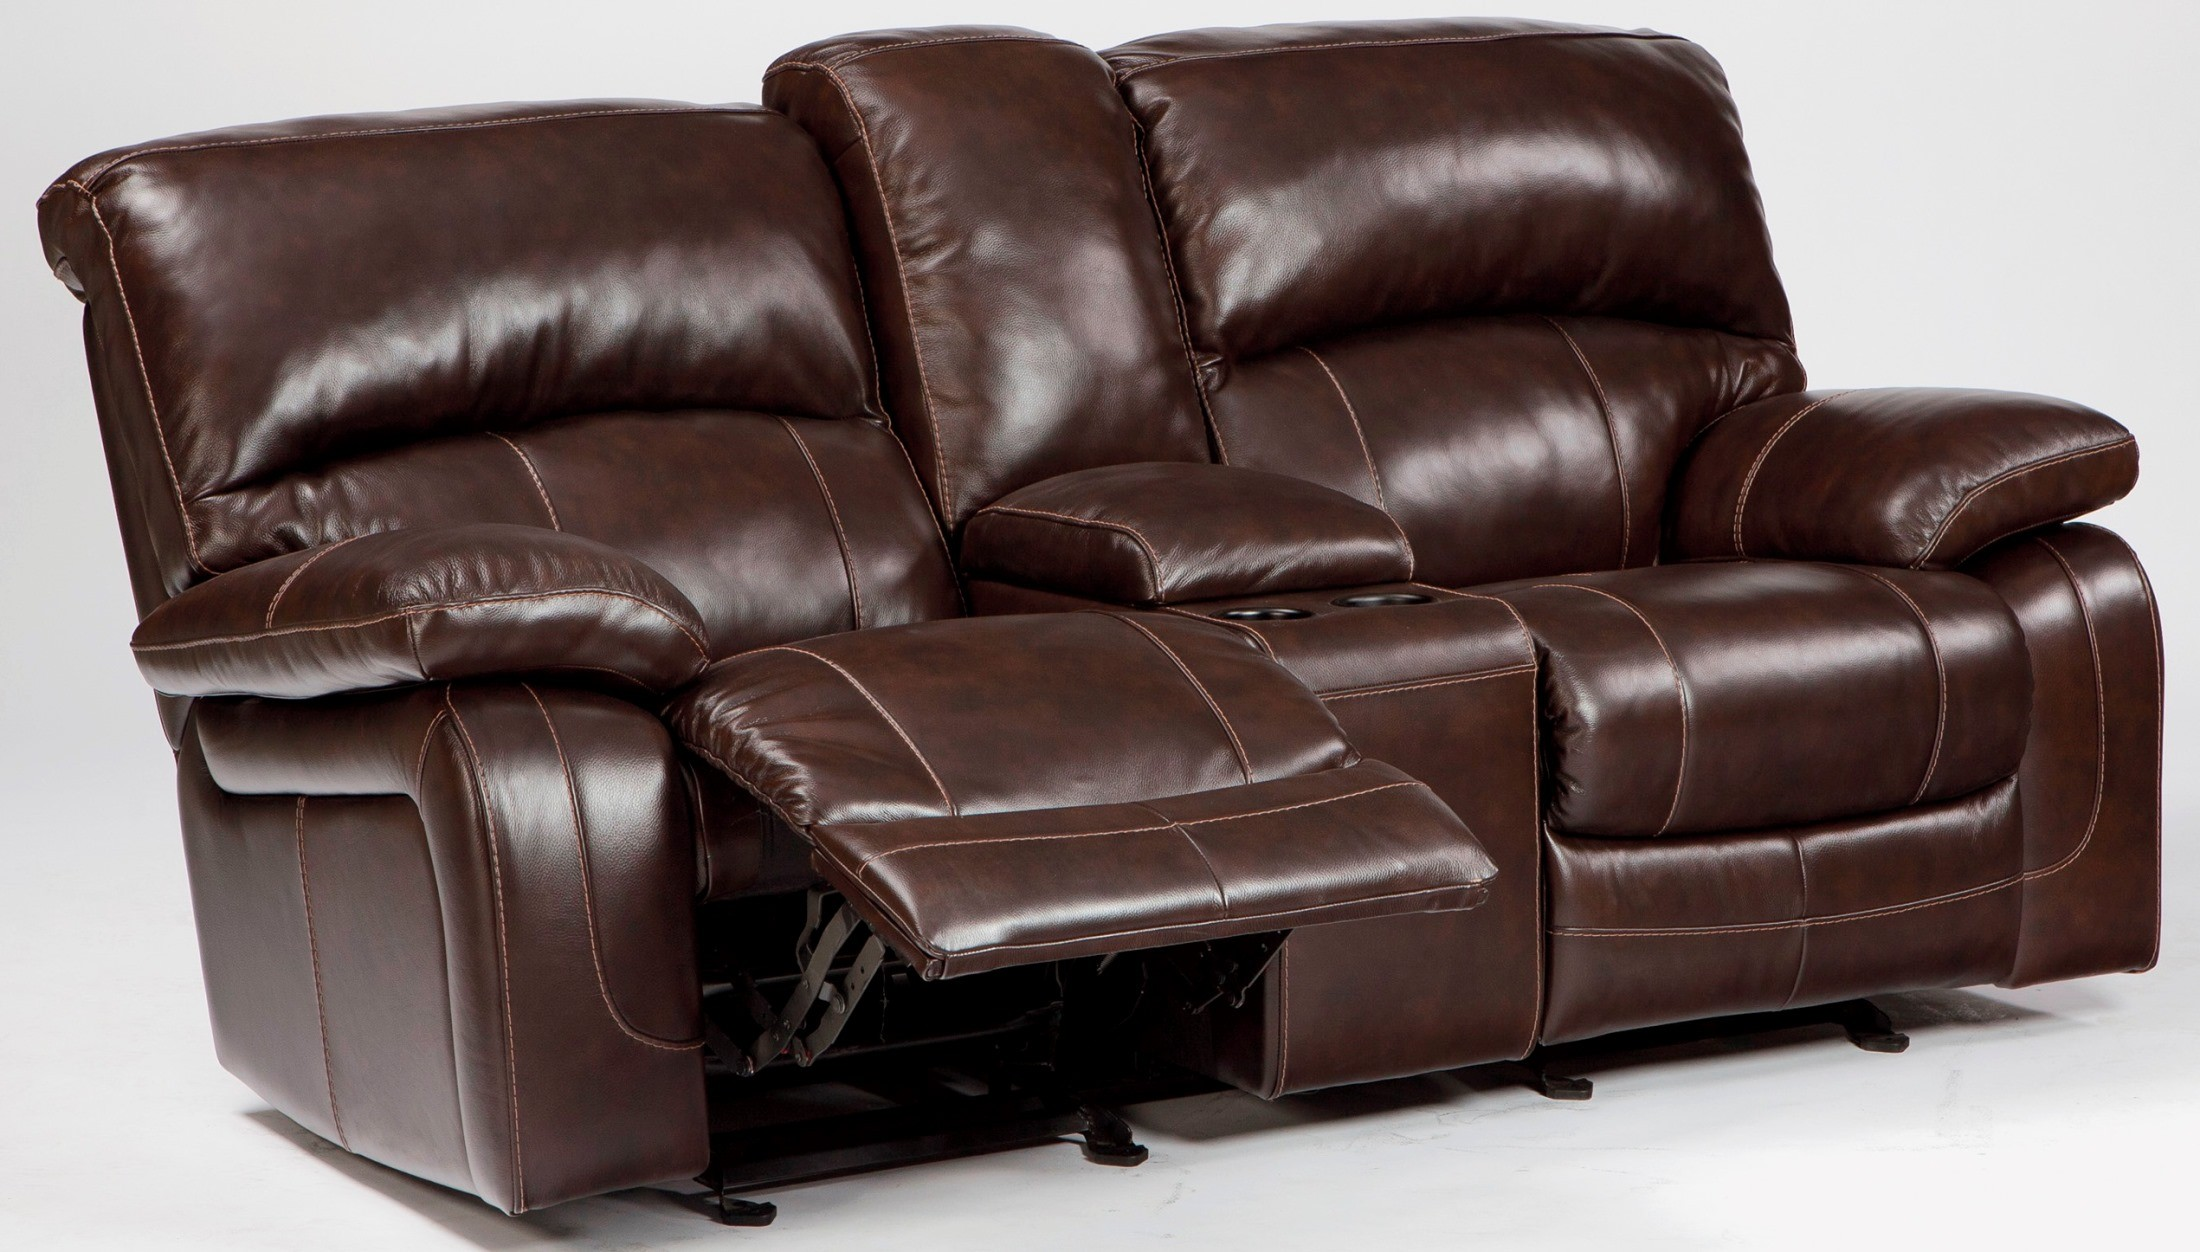 Damacio Dark Brown Glider Power Reclining Loveseat With Console From Ashley U9820091 Coleman